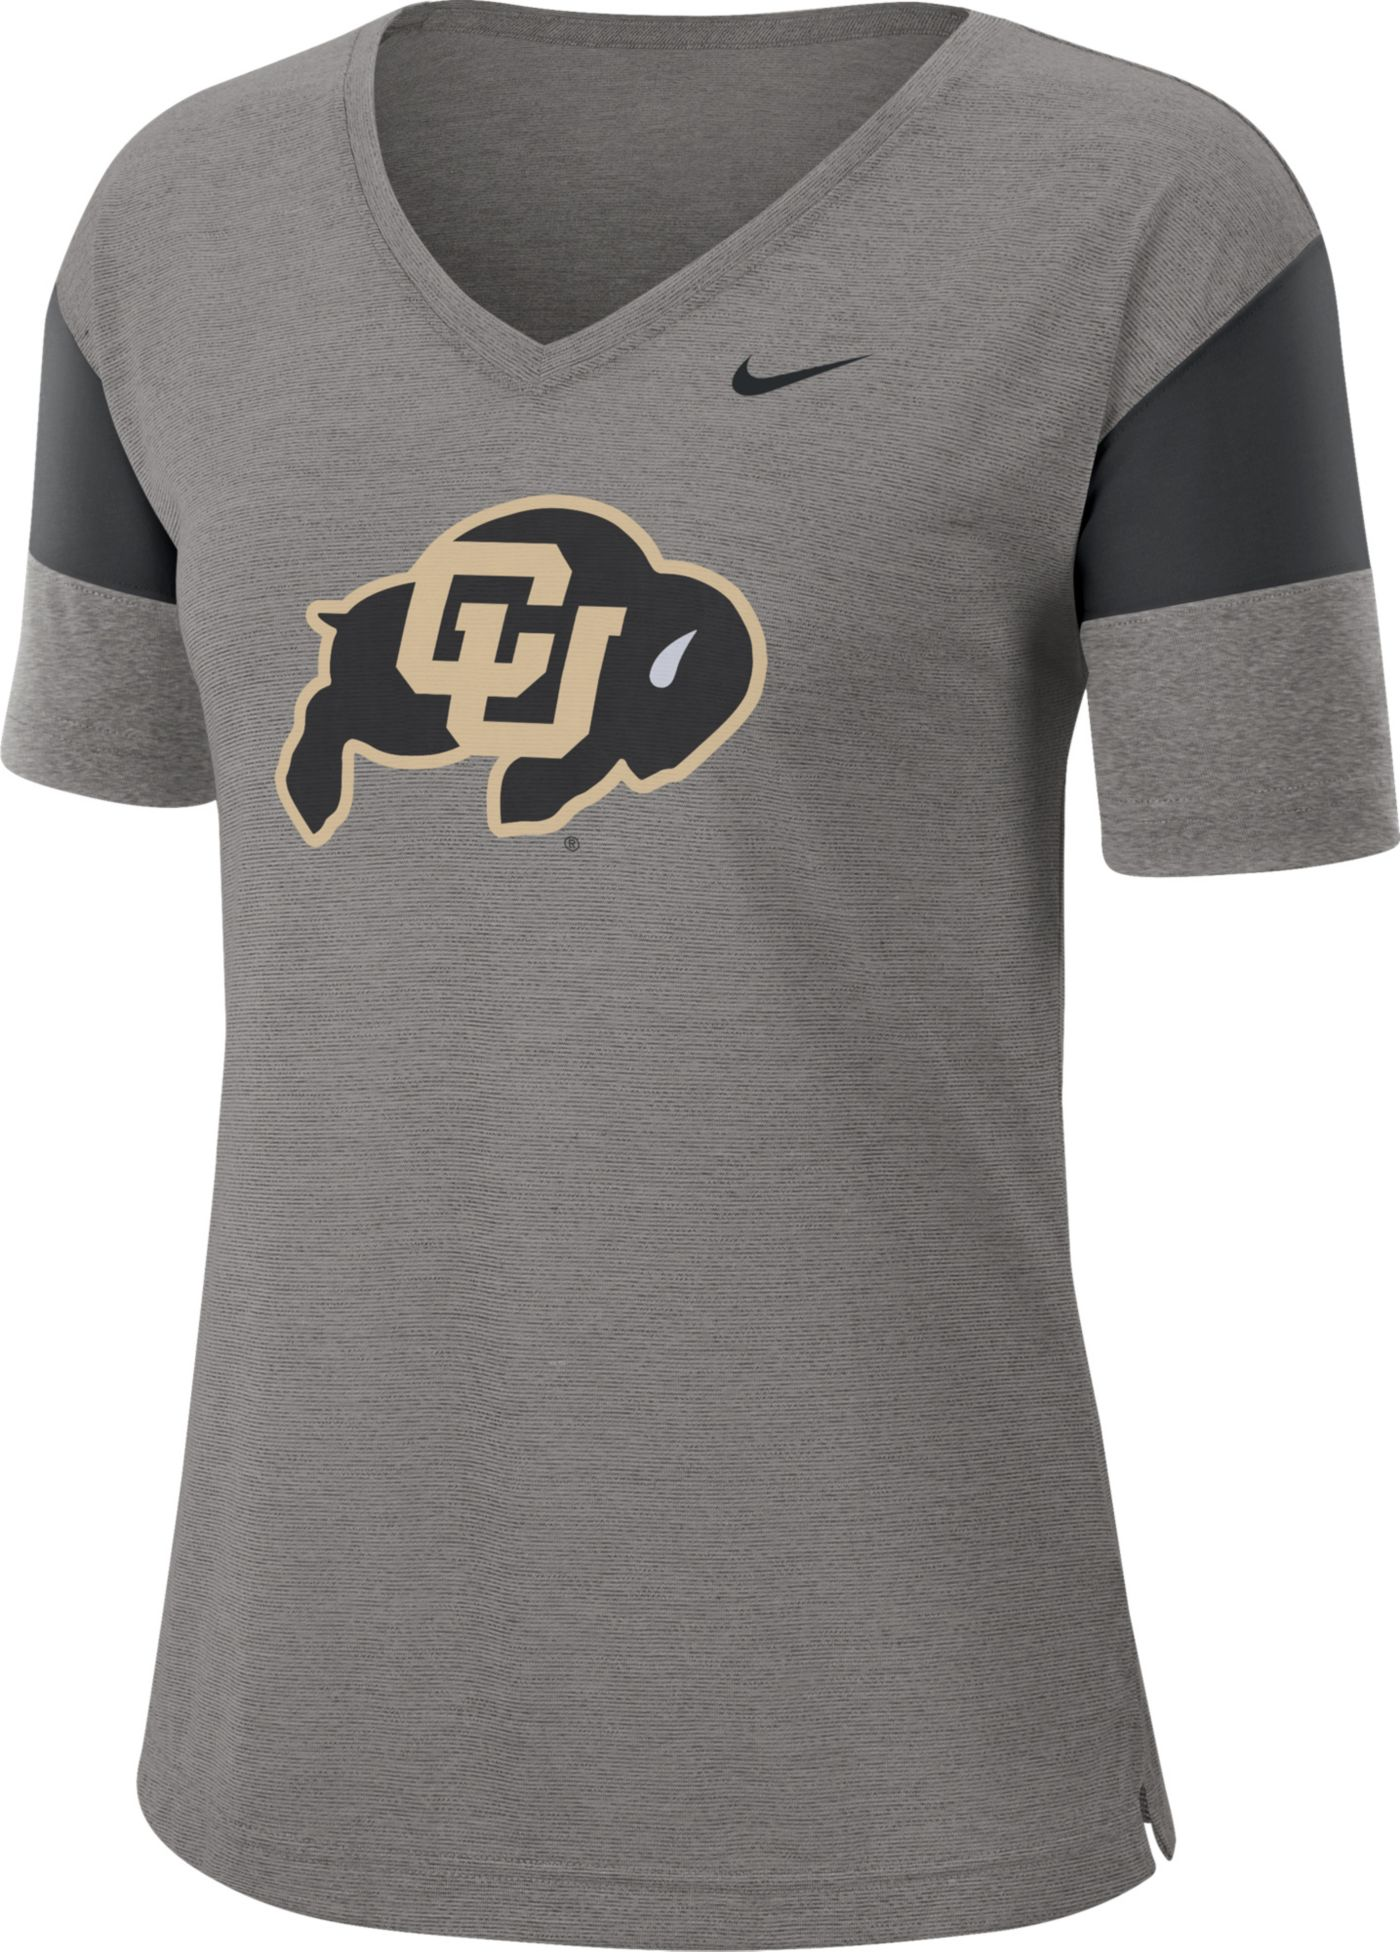 Nike Women's Colorado Buffaloes Grey Breathe V-Neck T-Shirt